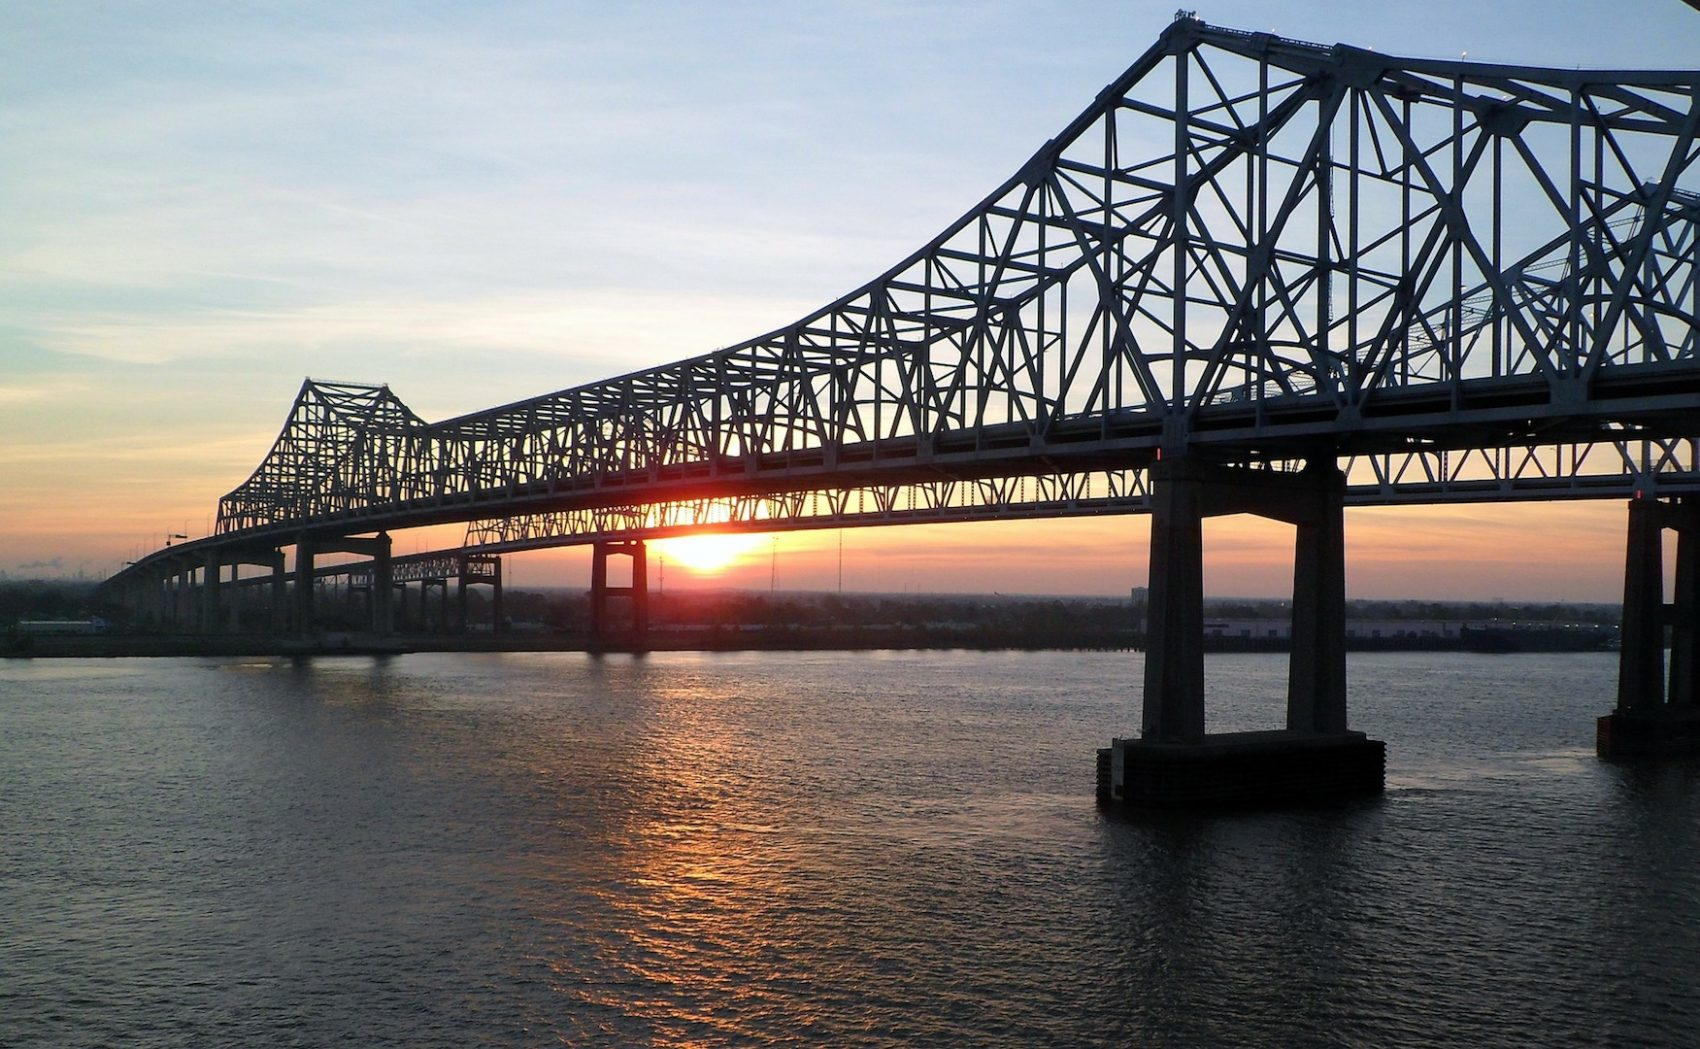 The Crescent City Connection over the Mississippi River in New Orelans, La. (Pixabay)